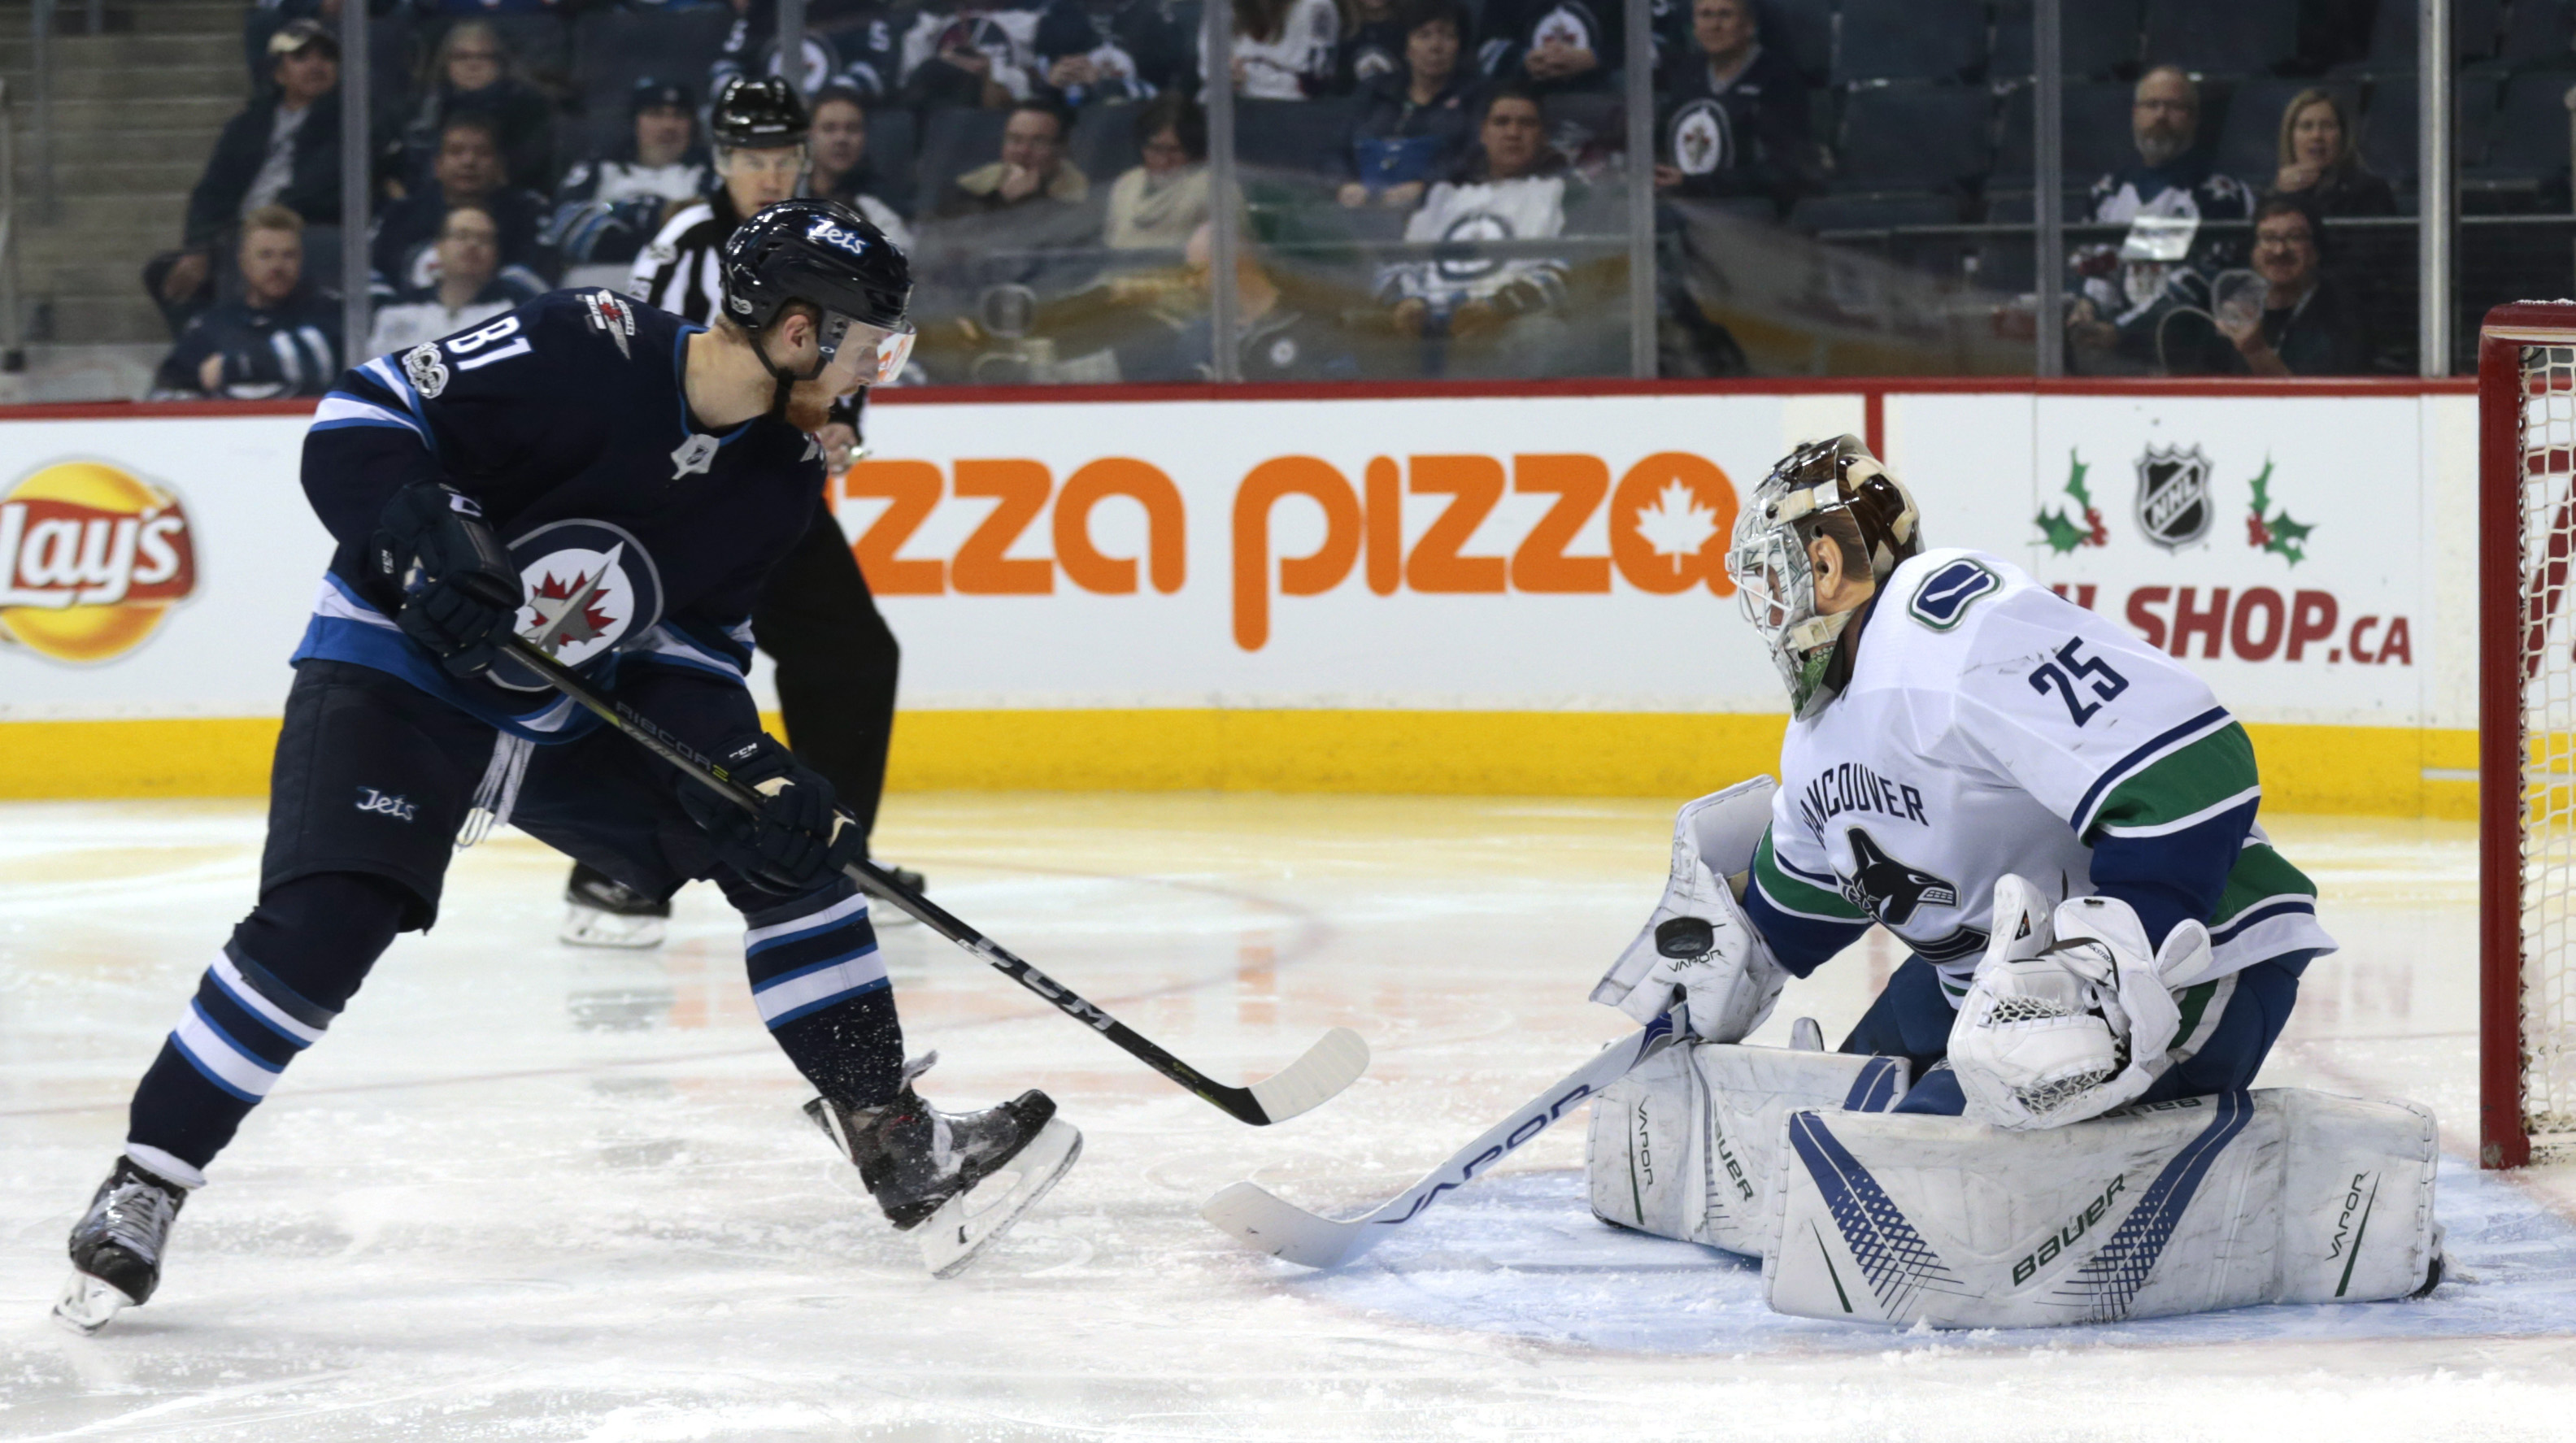 JNGD.31: Jets Roll Over the Canucks